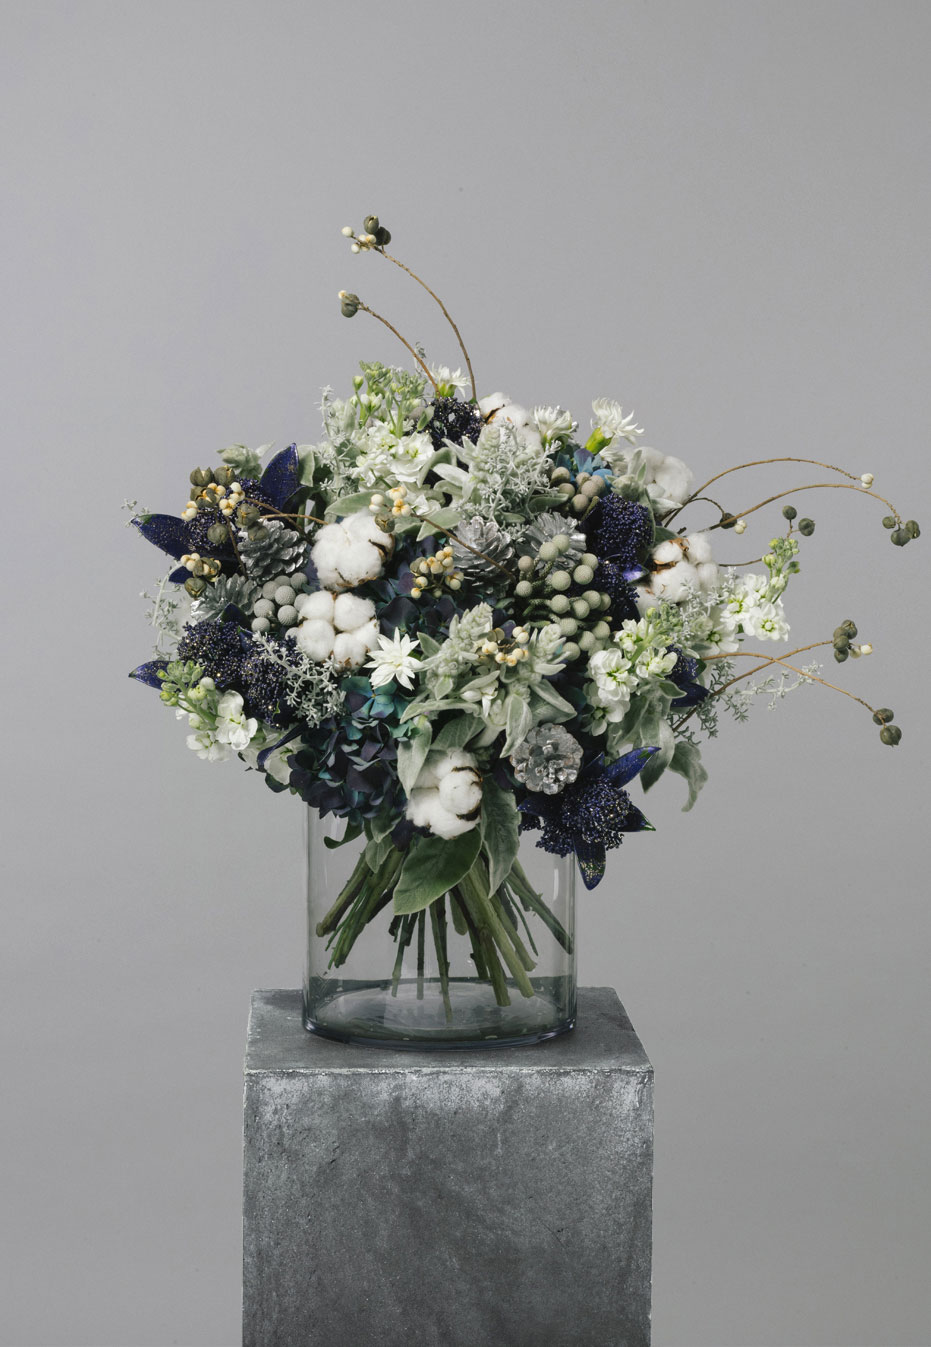 flower bouquet of hydrangea and silver brunia by flannel flowers